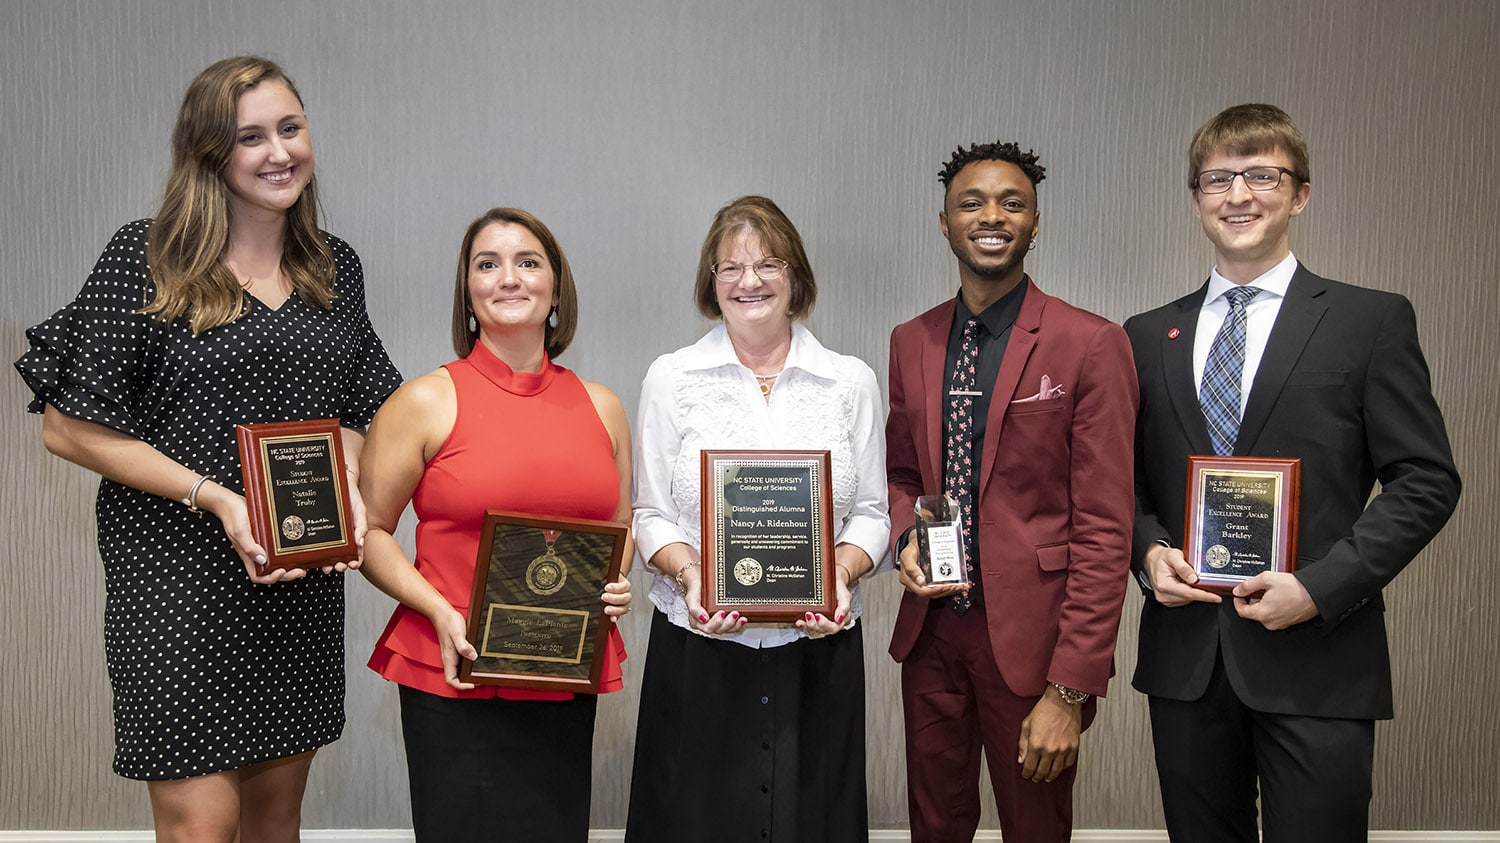 College of Sciences award winners for 2019